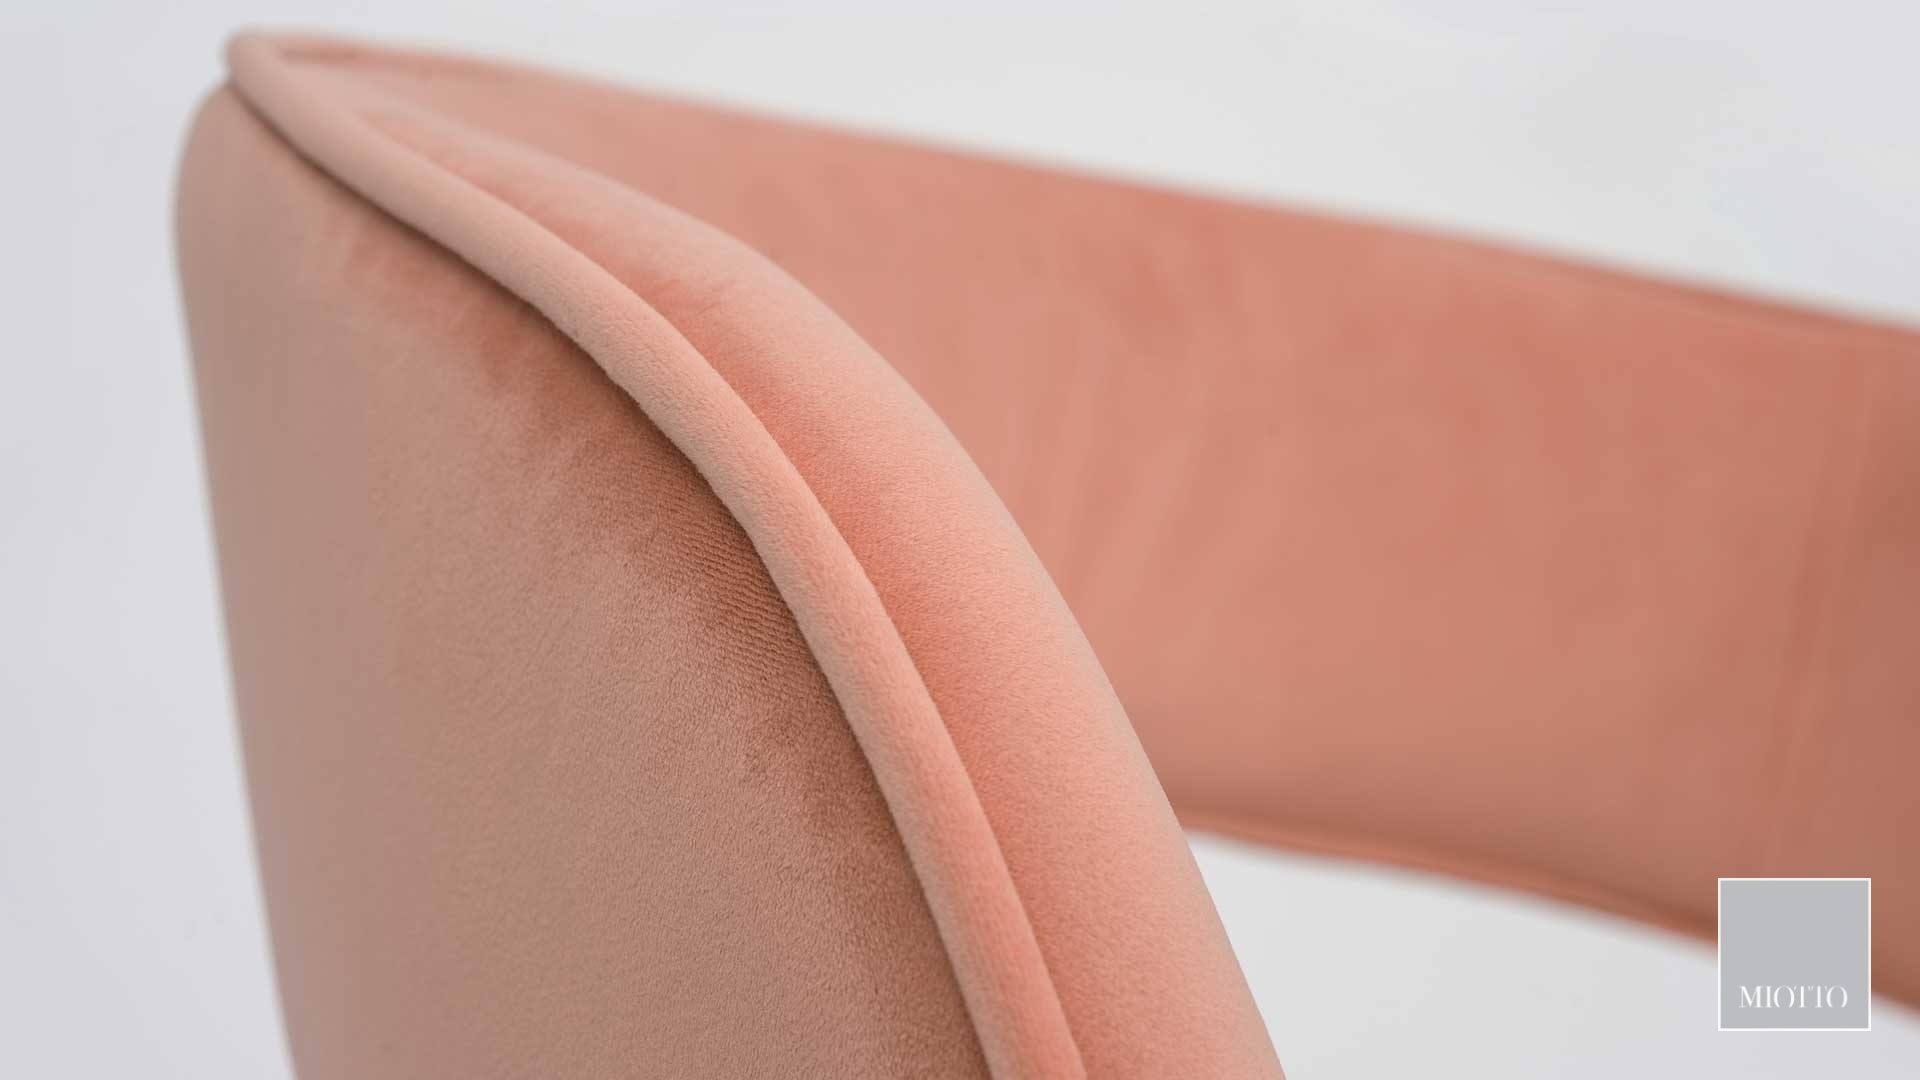 miotto_Aventino-dchr_salmon_detail_web